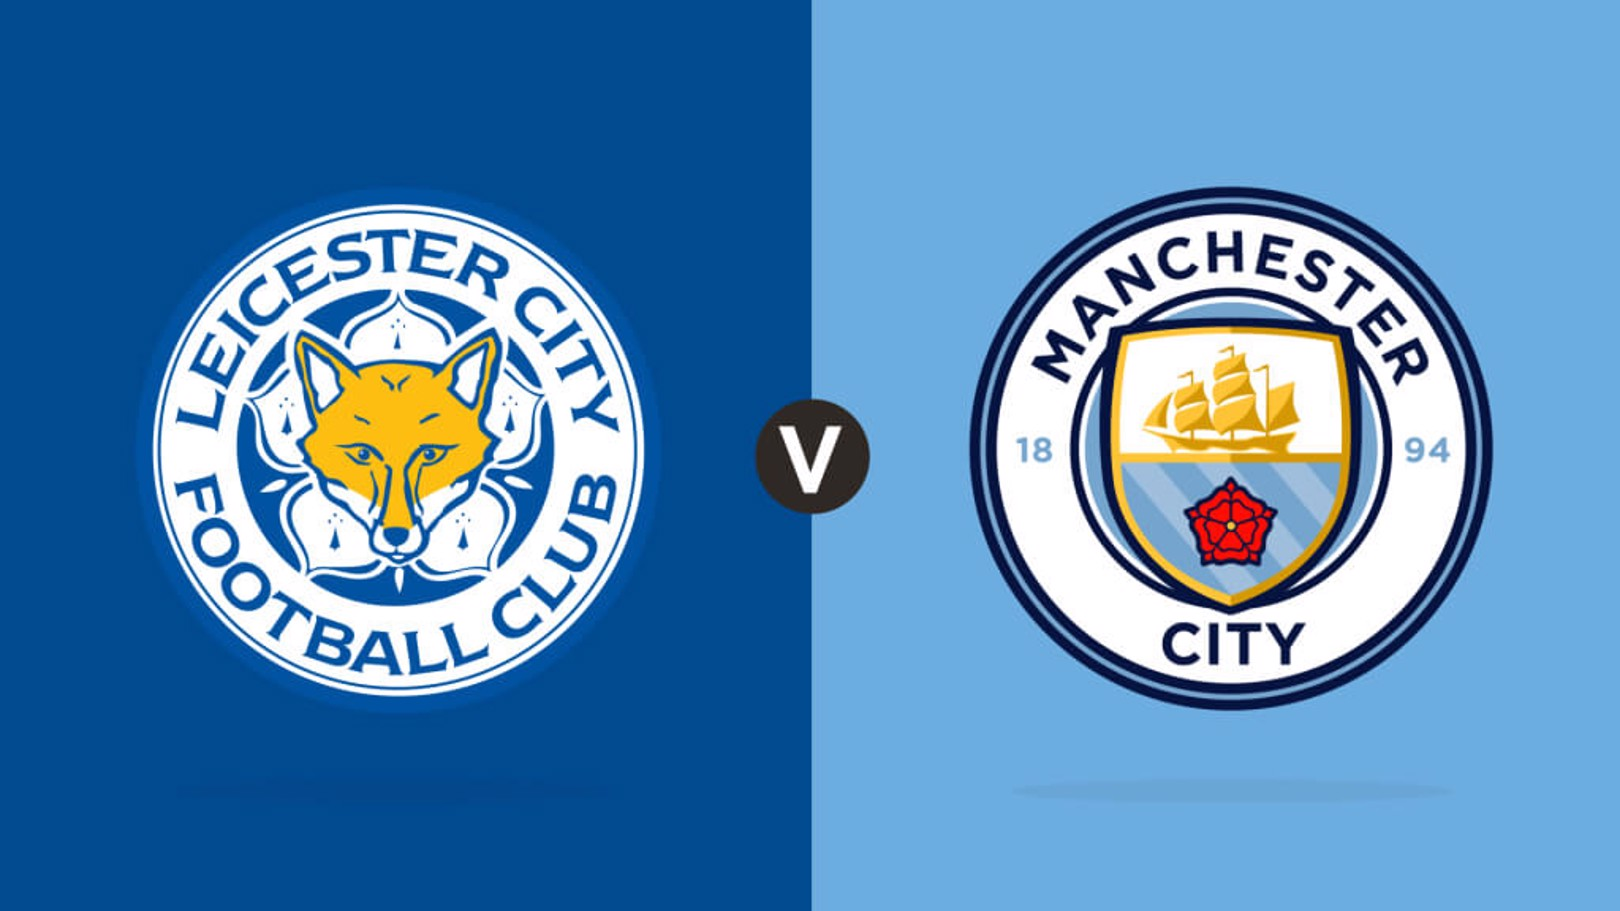 Leicester City v Man City Match Day